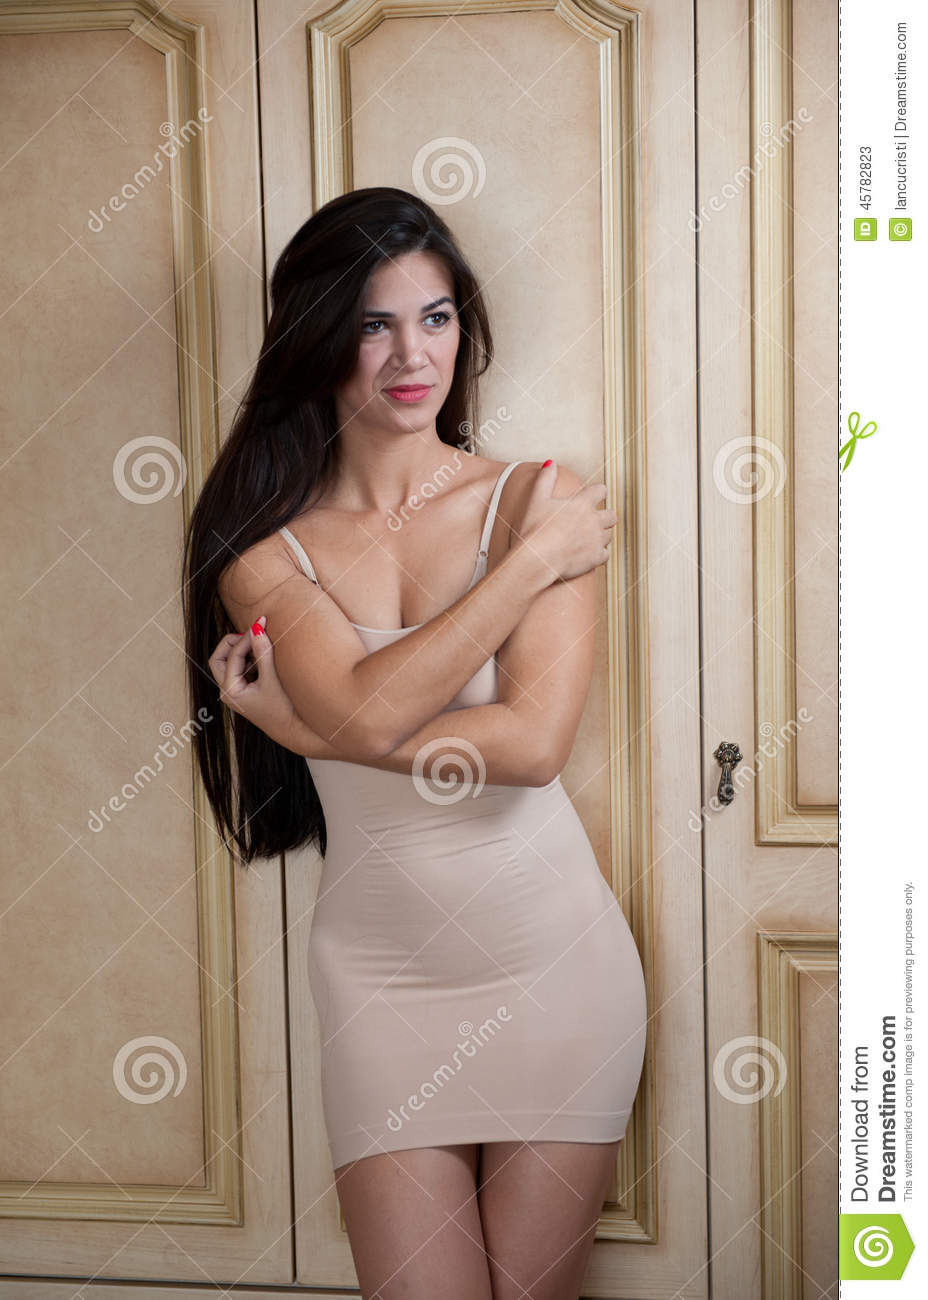 Charming Young Brunette Woman In Tight Fit Short Nude ...